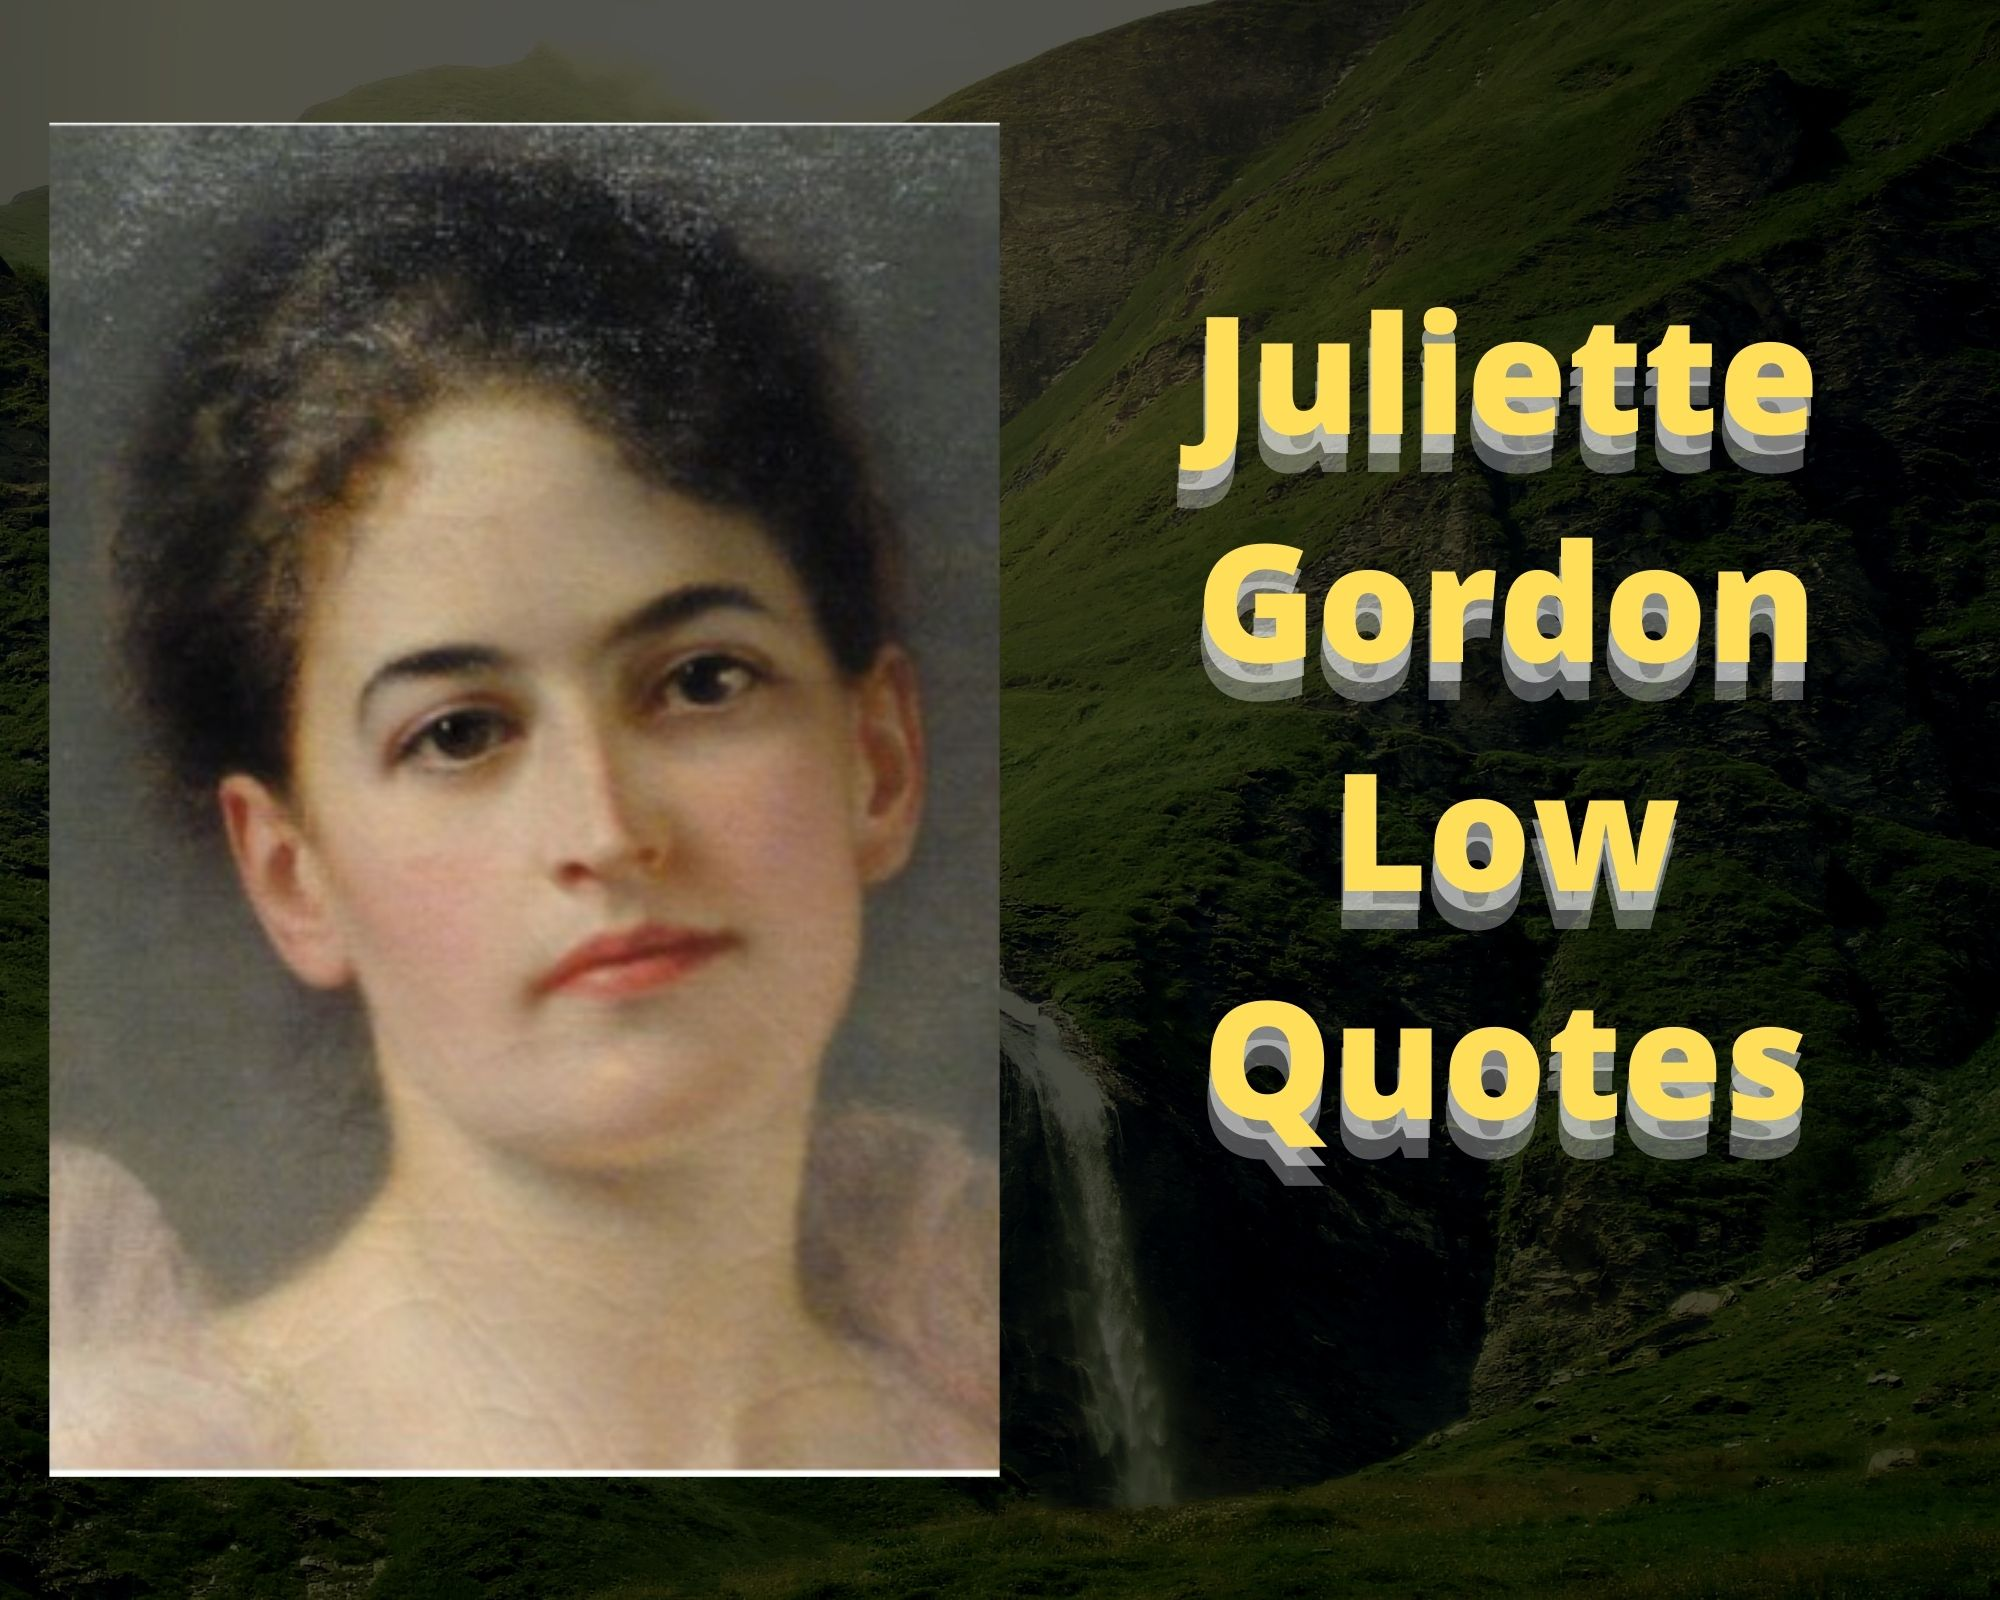 juliette gordon low quotes